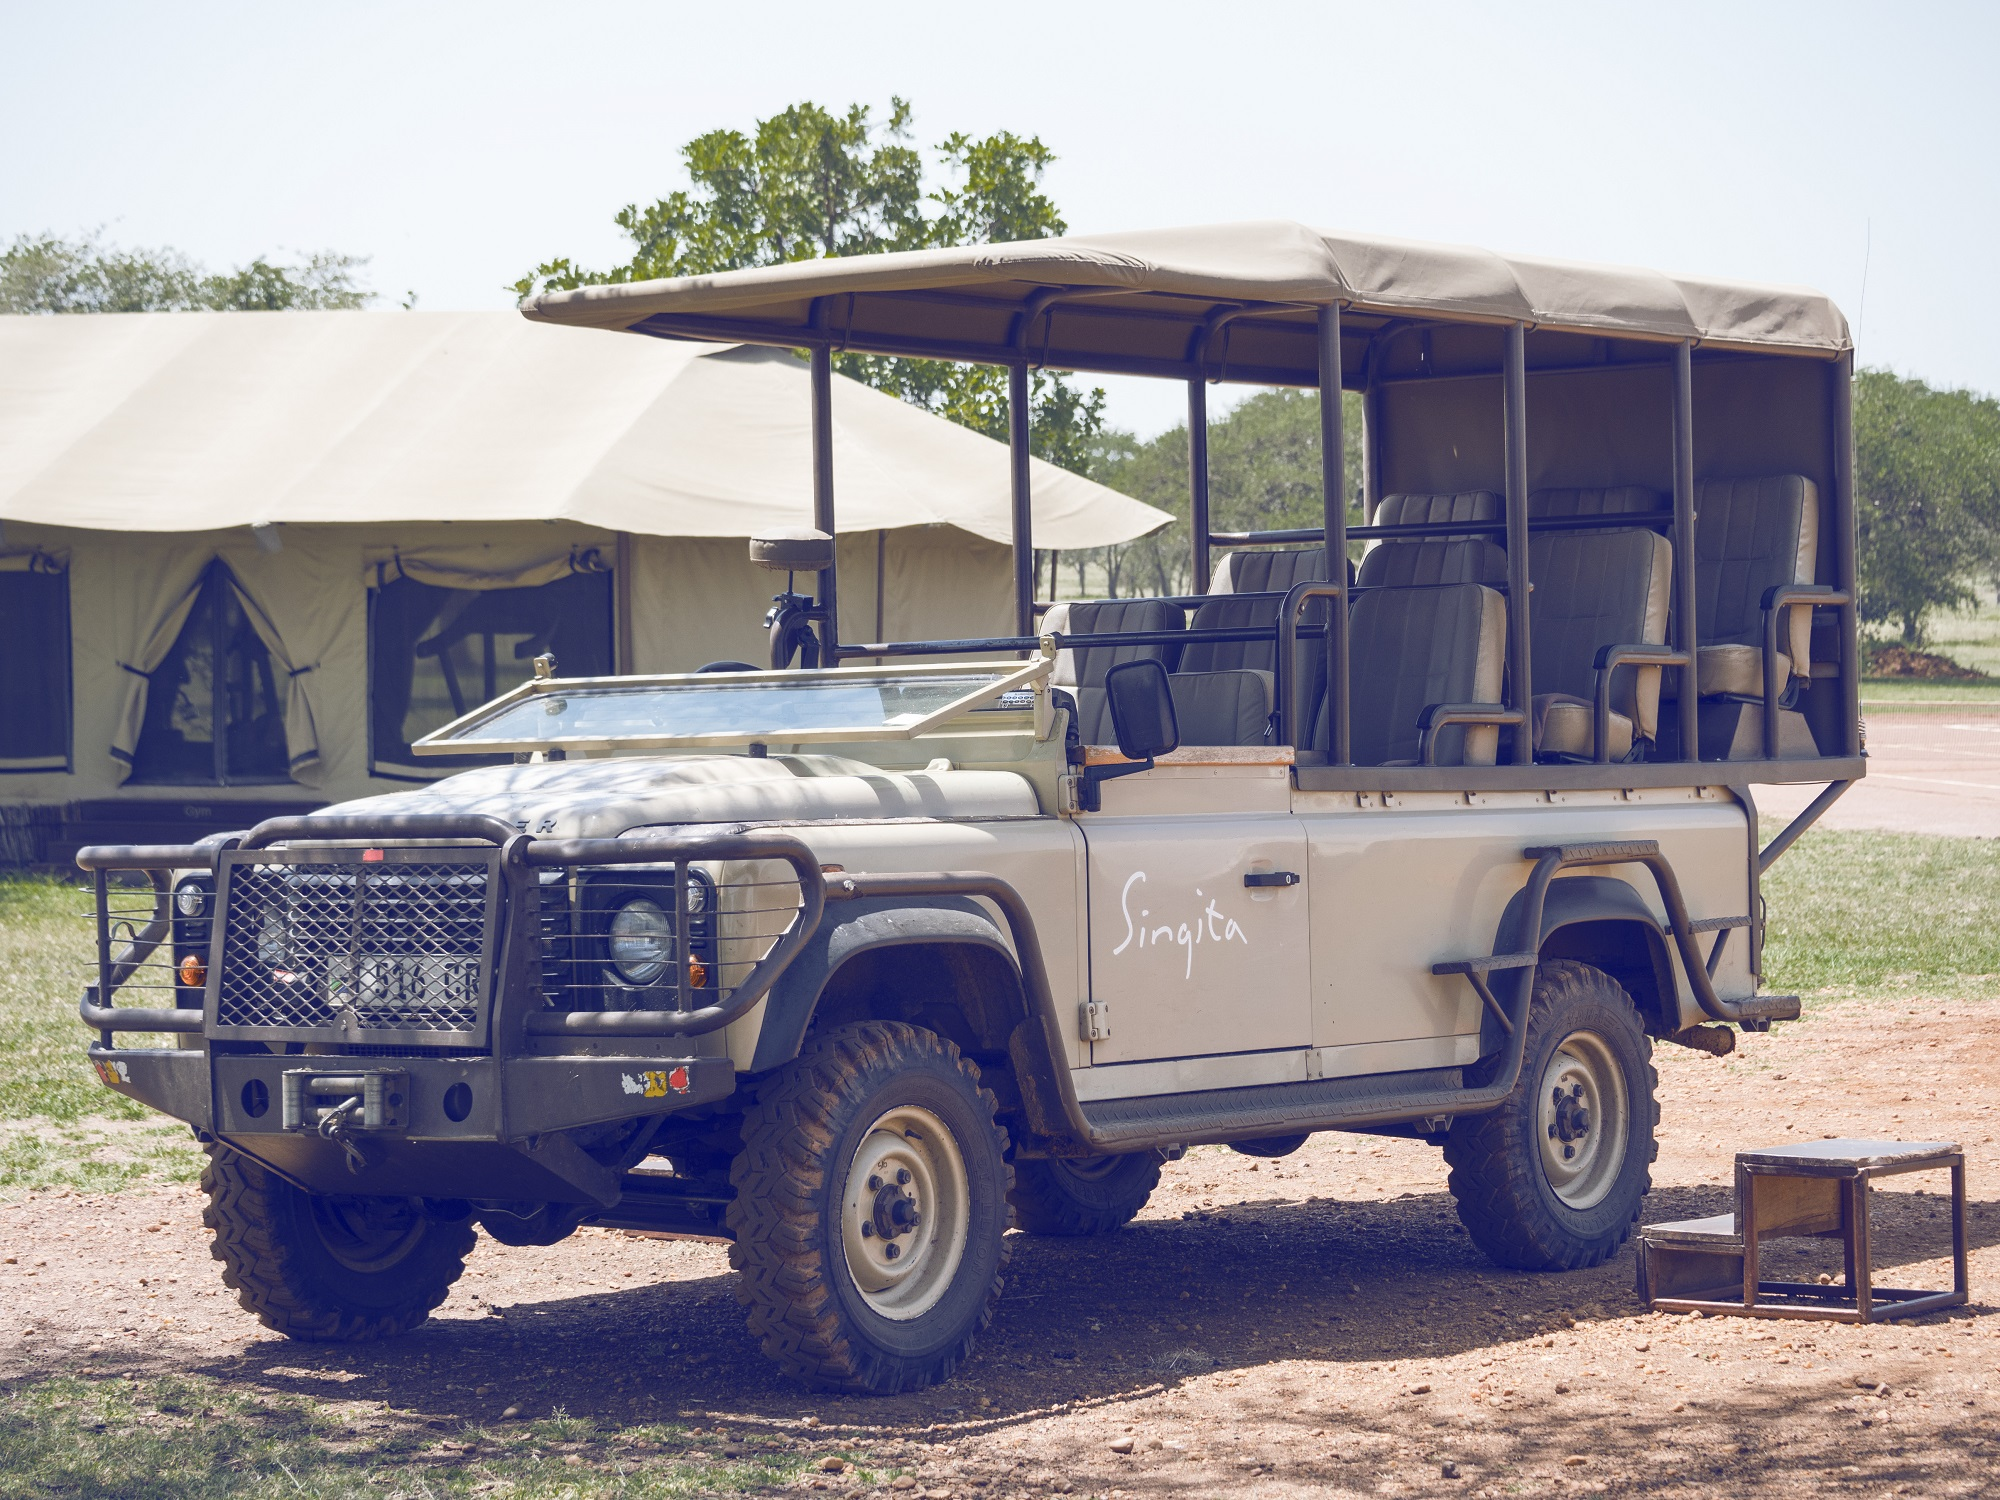 Singita Sabora game drives